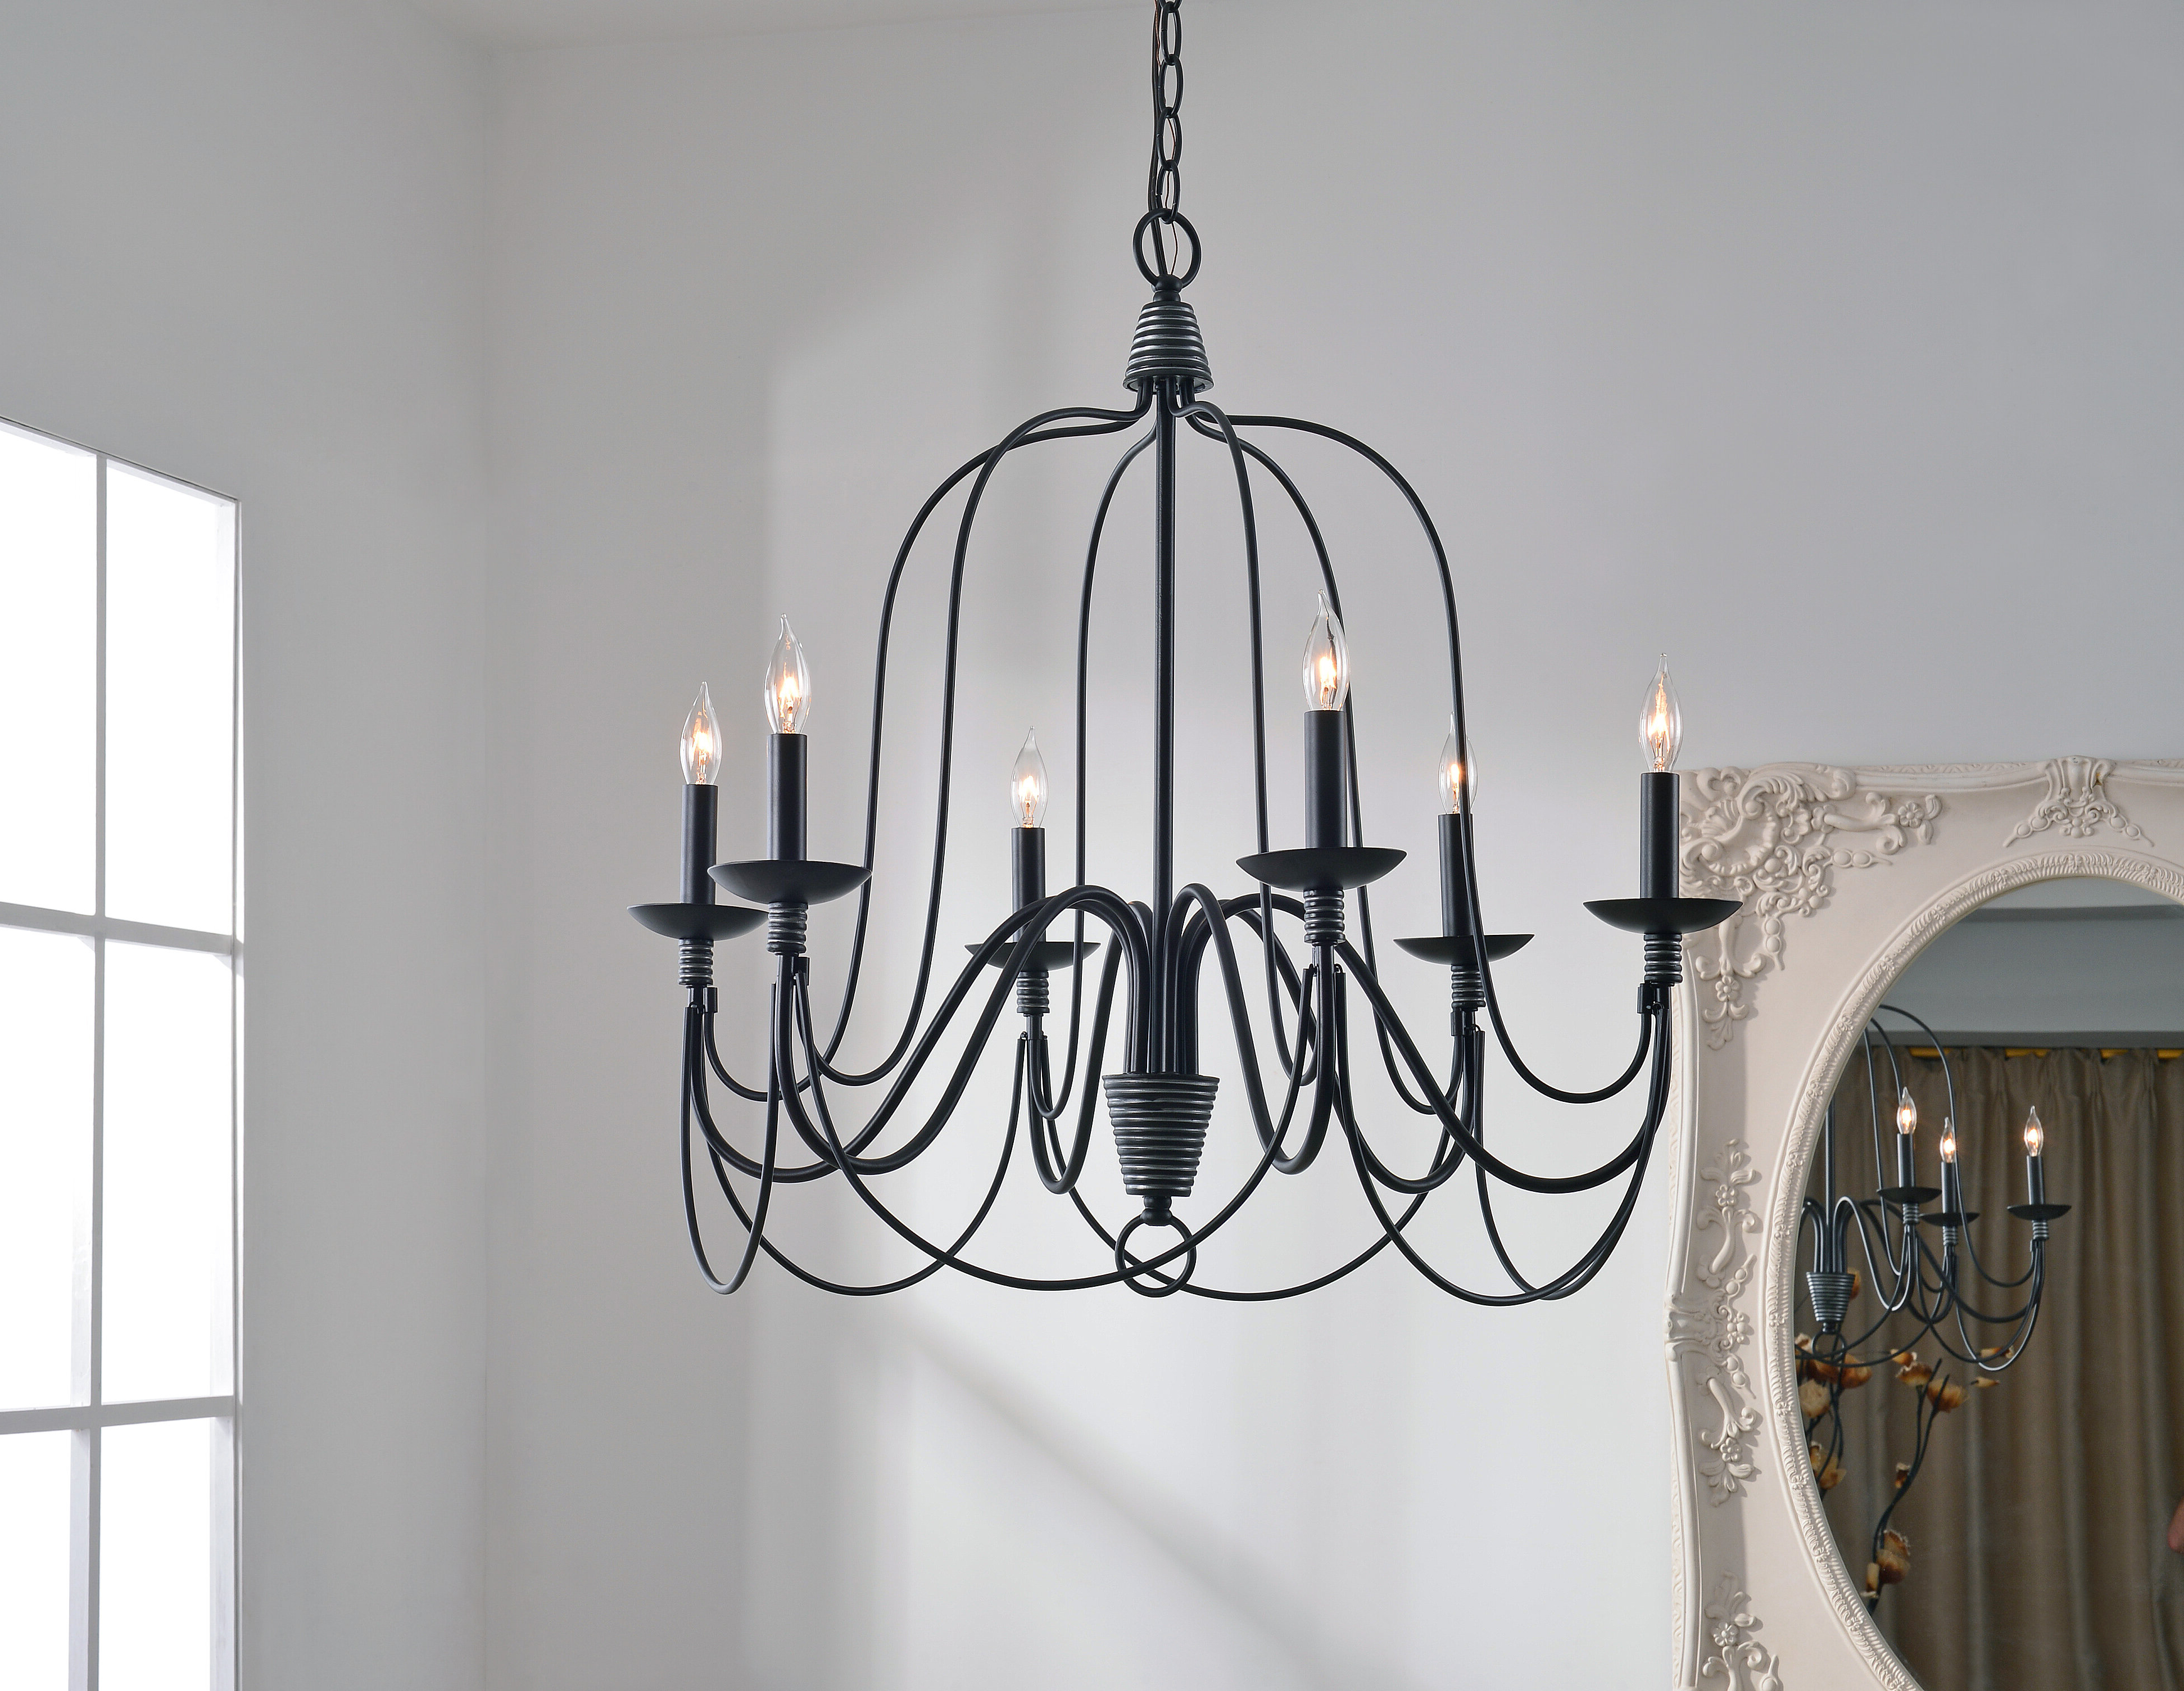 Watford 6 Light Candle Style Chandelier Intended For Most Current Watford 6 Light Candle Style Chandeliers (Gallery 1 of 20)